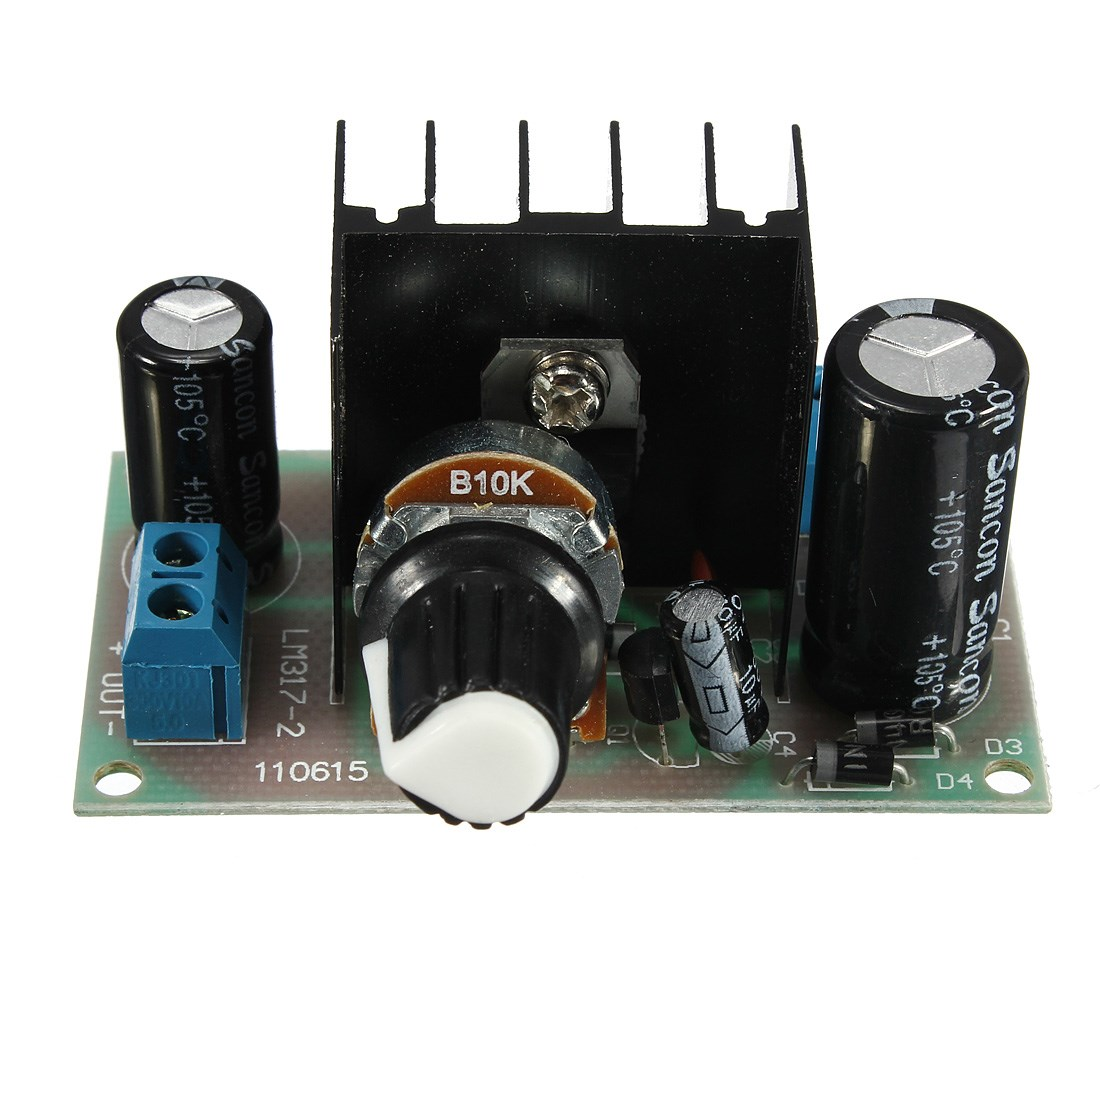 Lm317 Typical Adjustable Regulator Ckt Arduino T Lm338 Lm350 Voltage Calculator Schematic Hot Sale Electronic Circuit Board Dc Ac To Power Continuous 125v 37v Usa In Integrated Circuits From